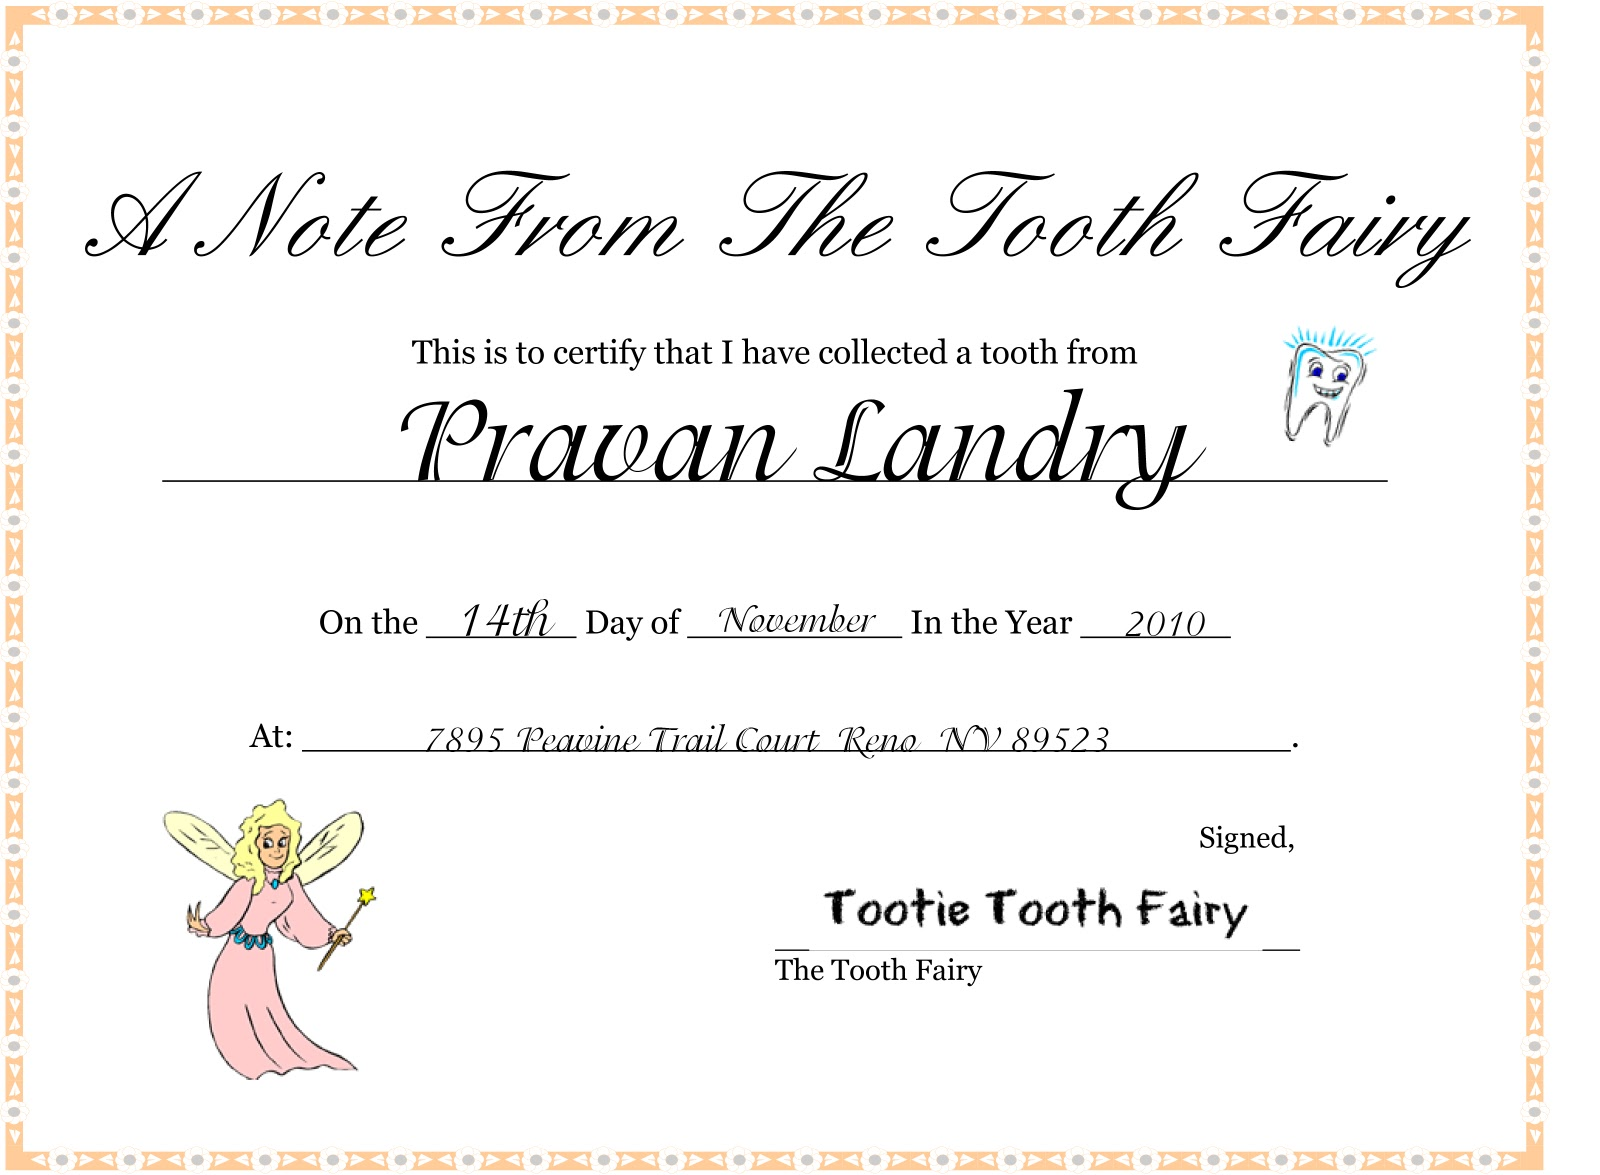 Famous tooth fairy certificate template ideas resume ideas www tooth fairy certificate award for personal reference letter templates two worlds meet glitter and gold fairies and dust magical xflitez Choice Image